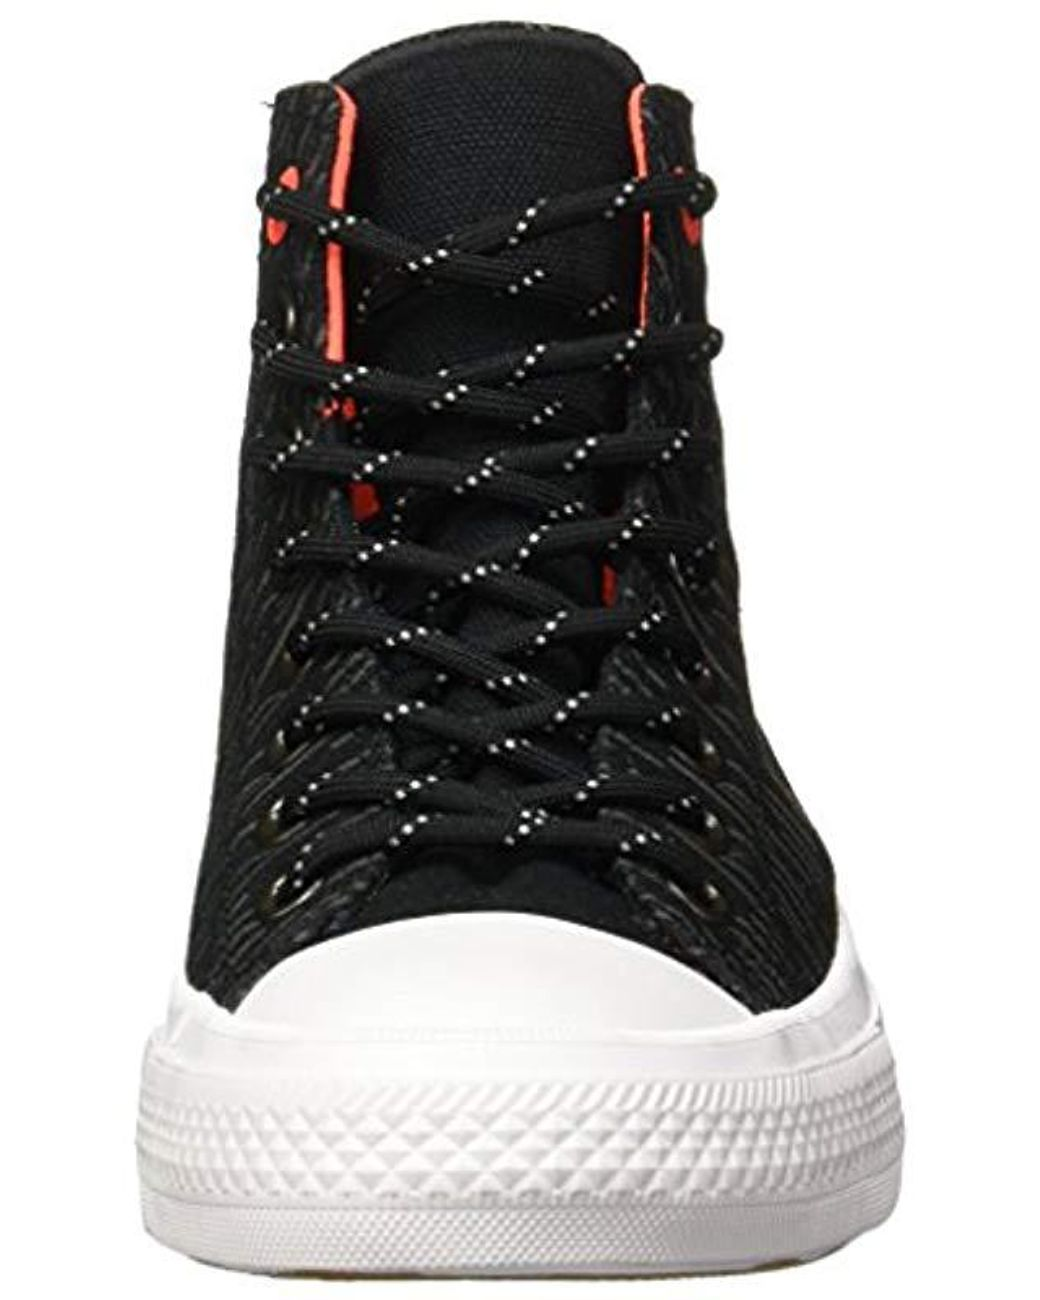 4d177bbdf5180 Converse Ctas Ii Hi Shield S Trainers in Black for Men - Save 71% - Lyst